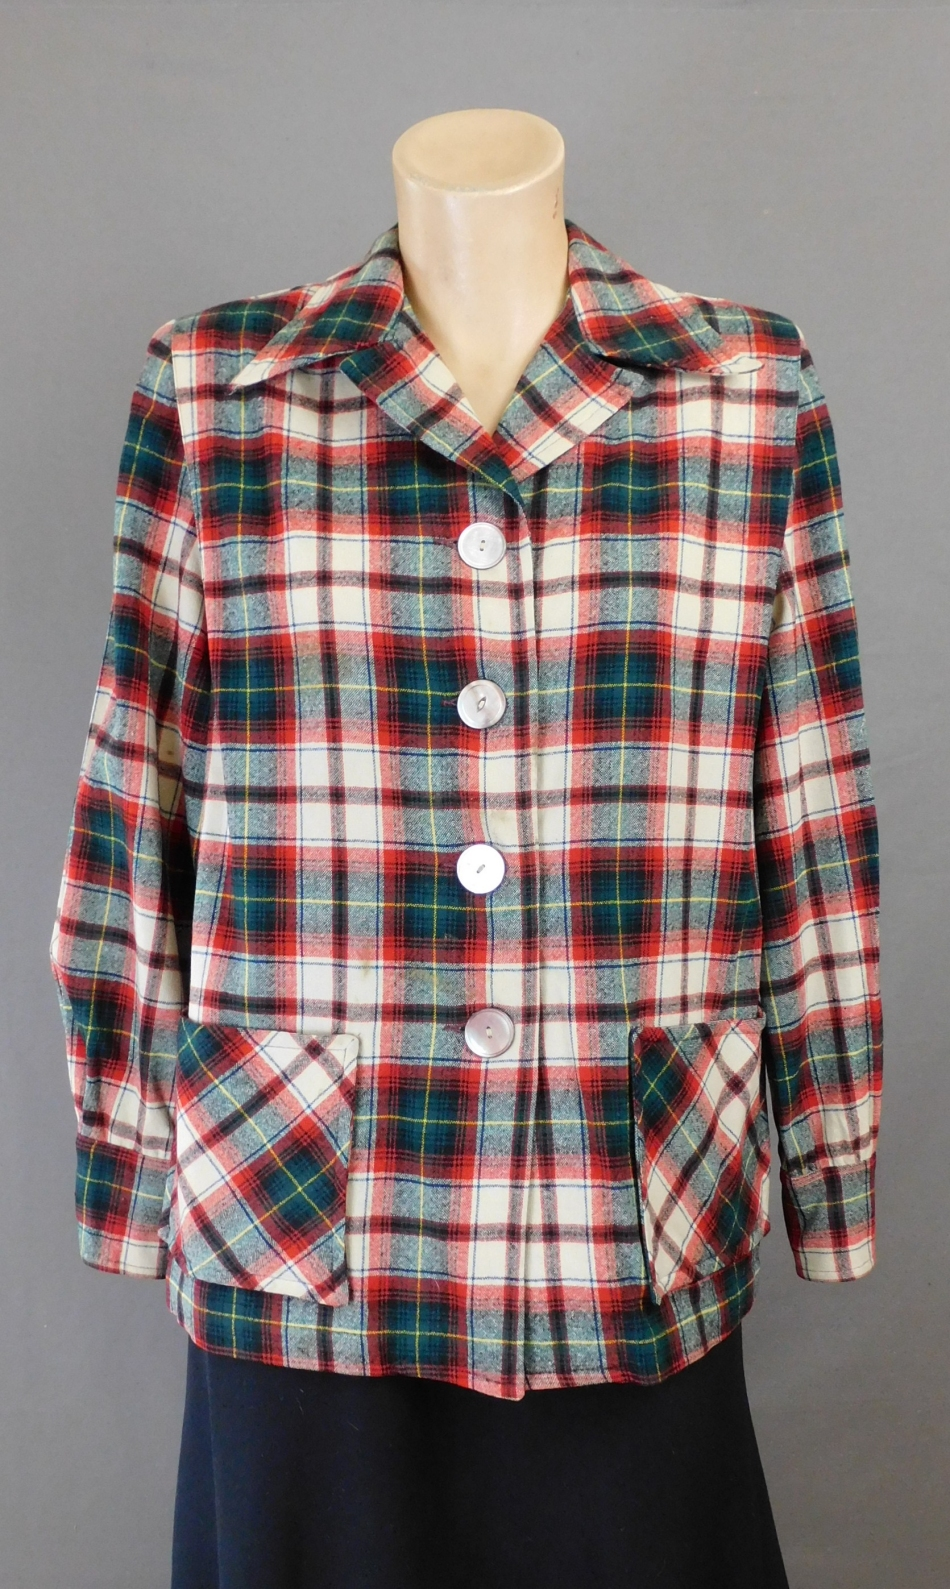 Vintage 1940s Pendleton 49er Plaid Jacket, 38 inch bust, Red and Dark Green some issues